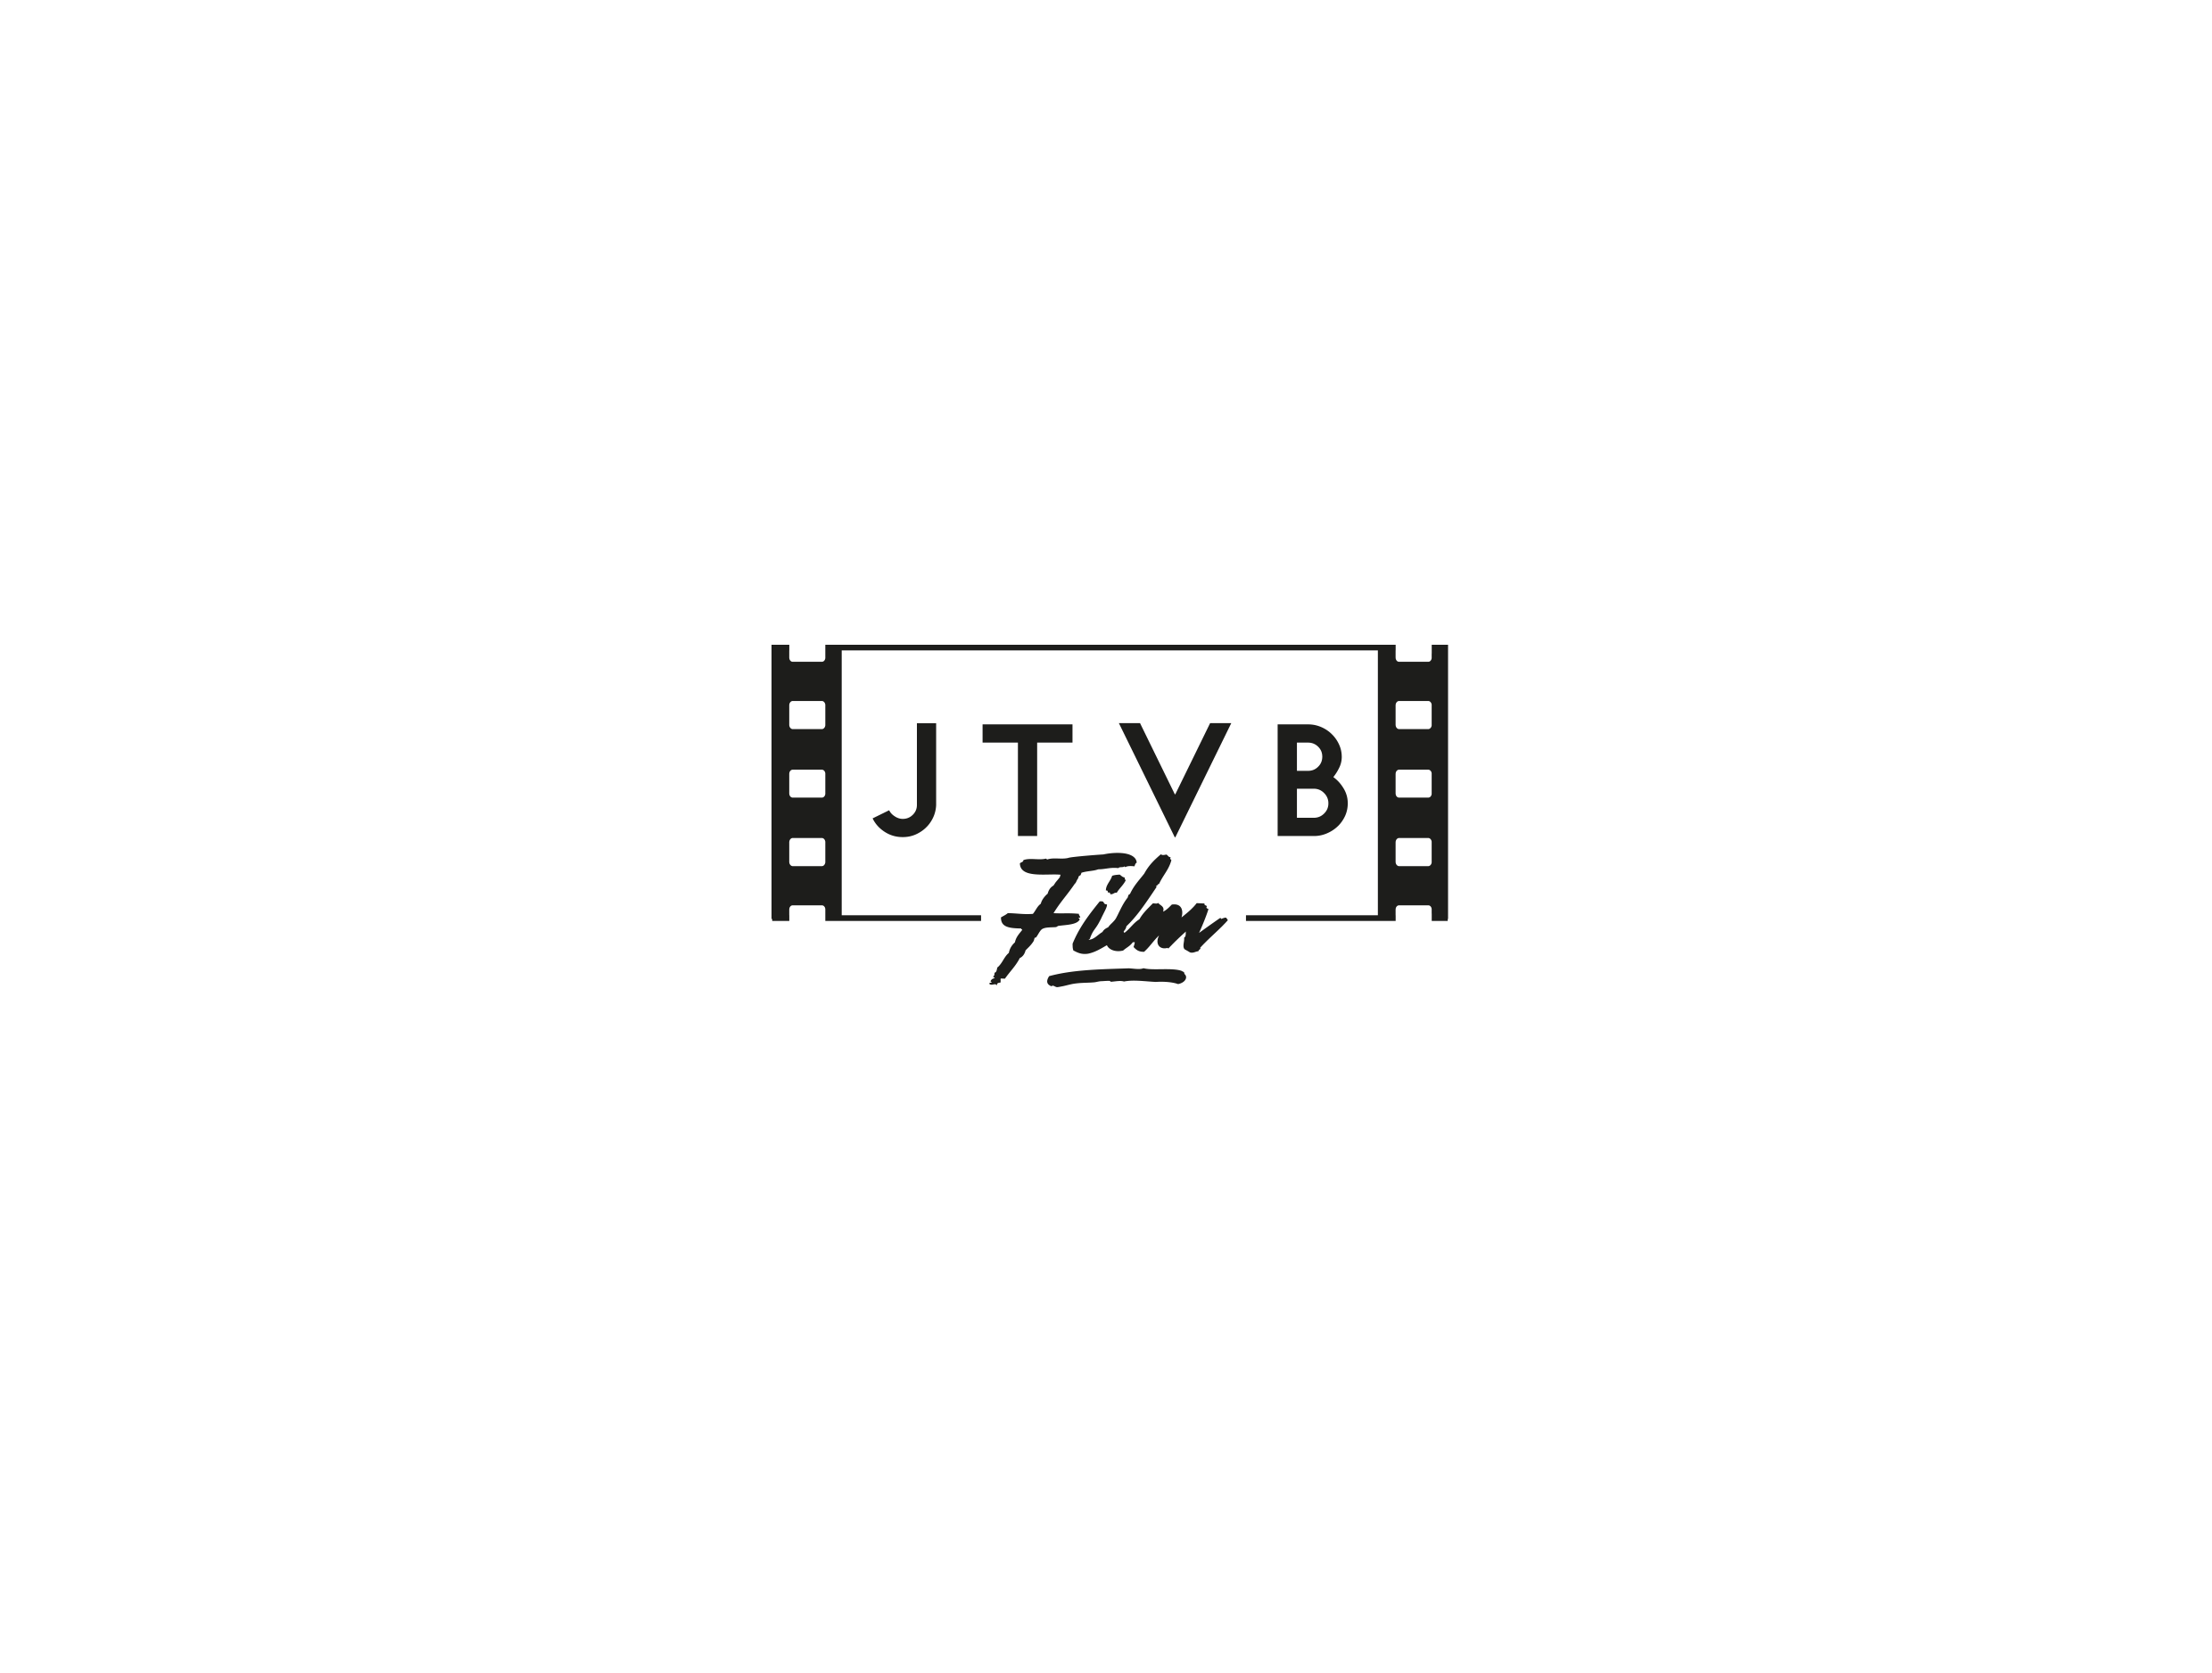 logojtvb(noirtransparent)